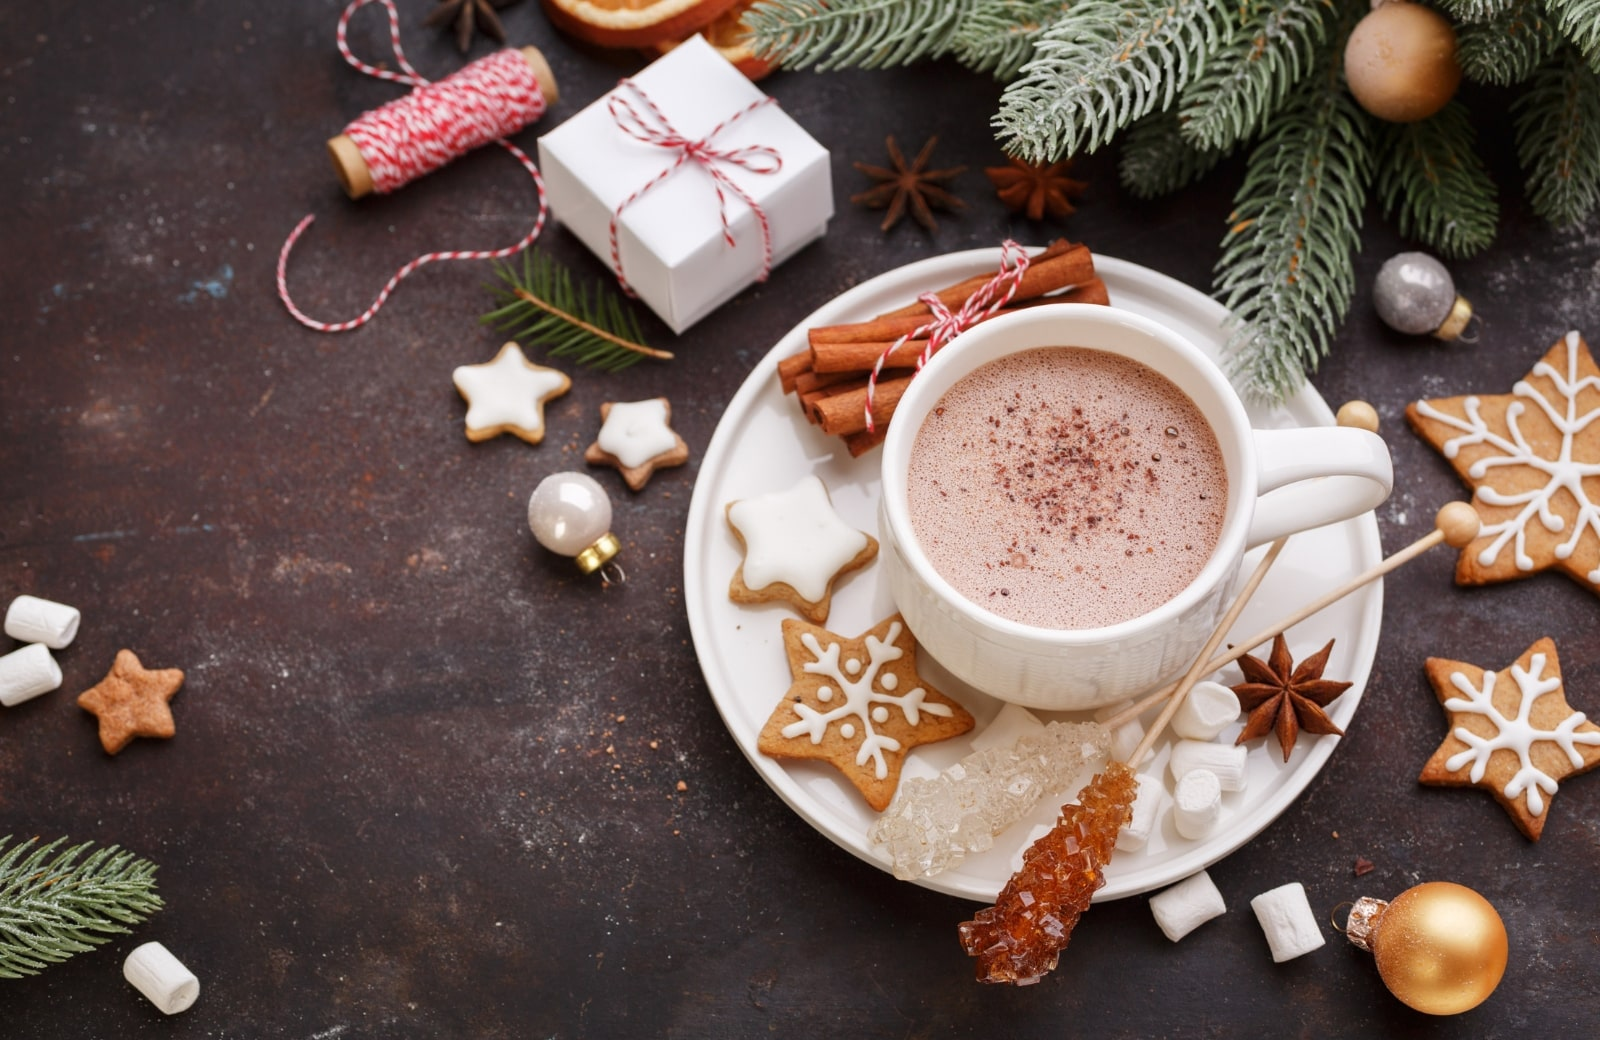 cup of hot chocolate with christmas decor on the table - Norwalk CT apts The Waypointe